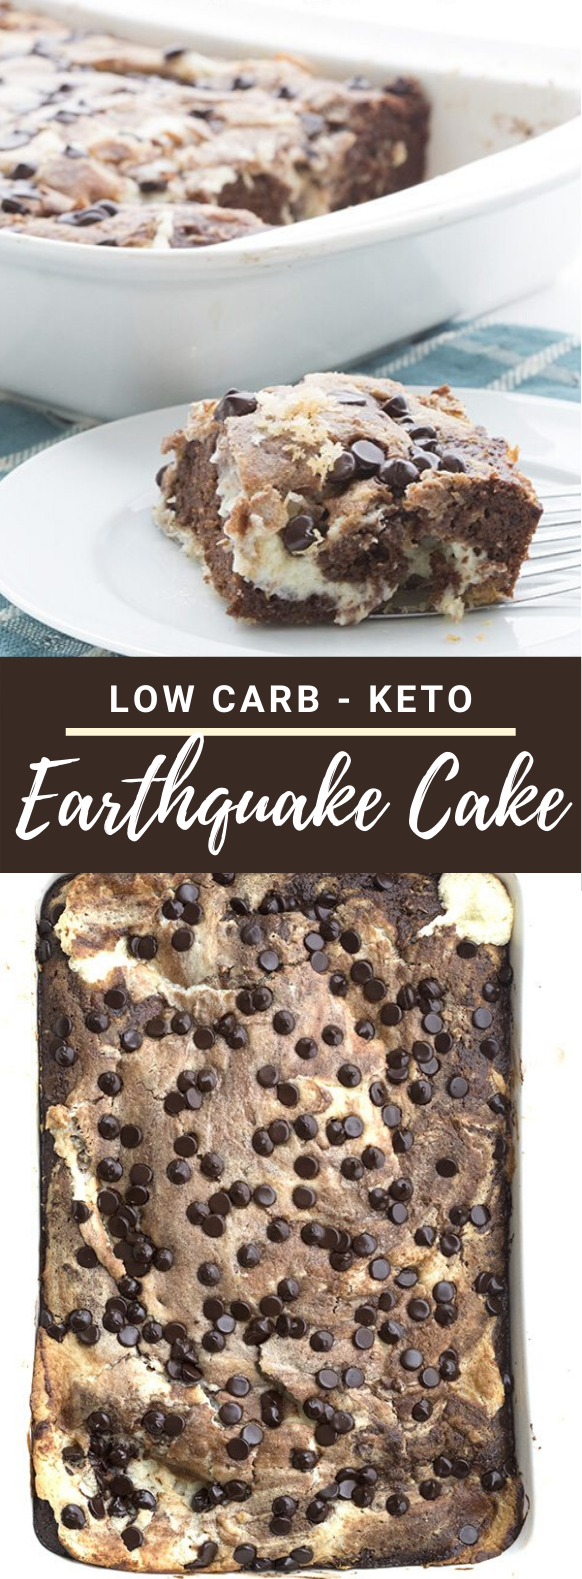 LOW CARB EARTHQUAKE CAKE #healthy #diet